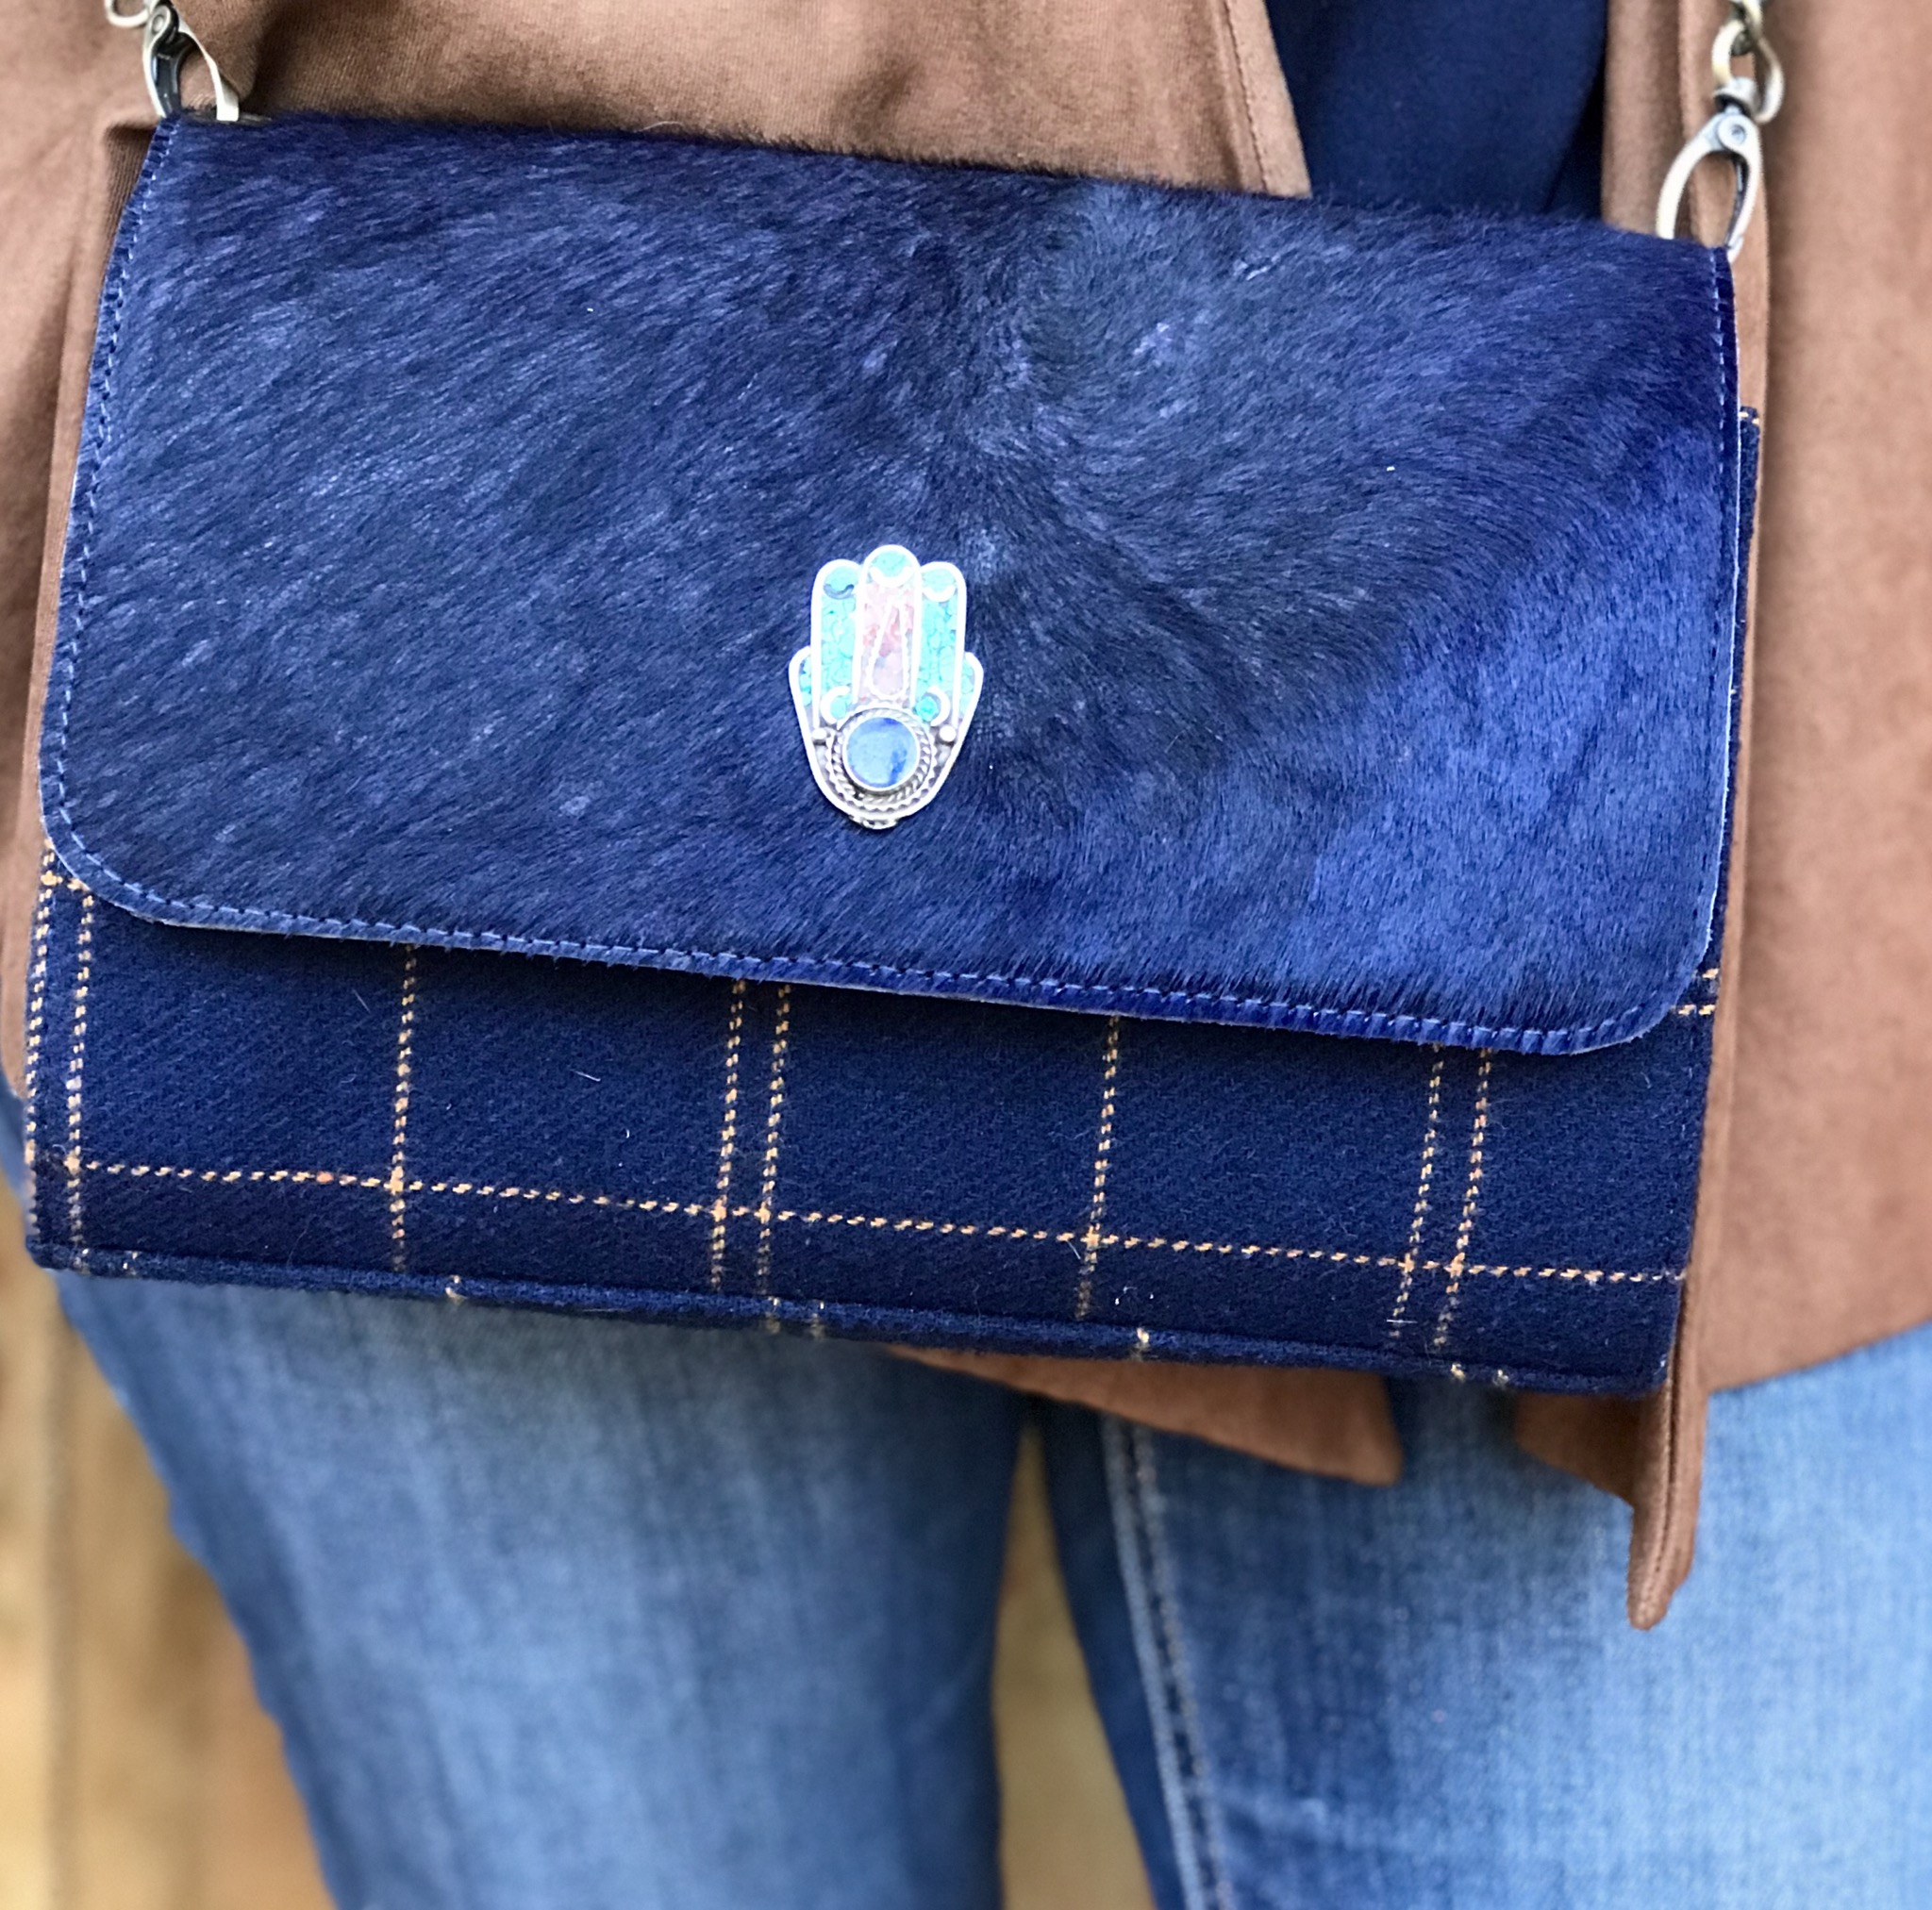 Bag suede leather tweed Dark blue with khmissa